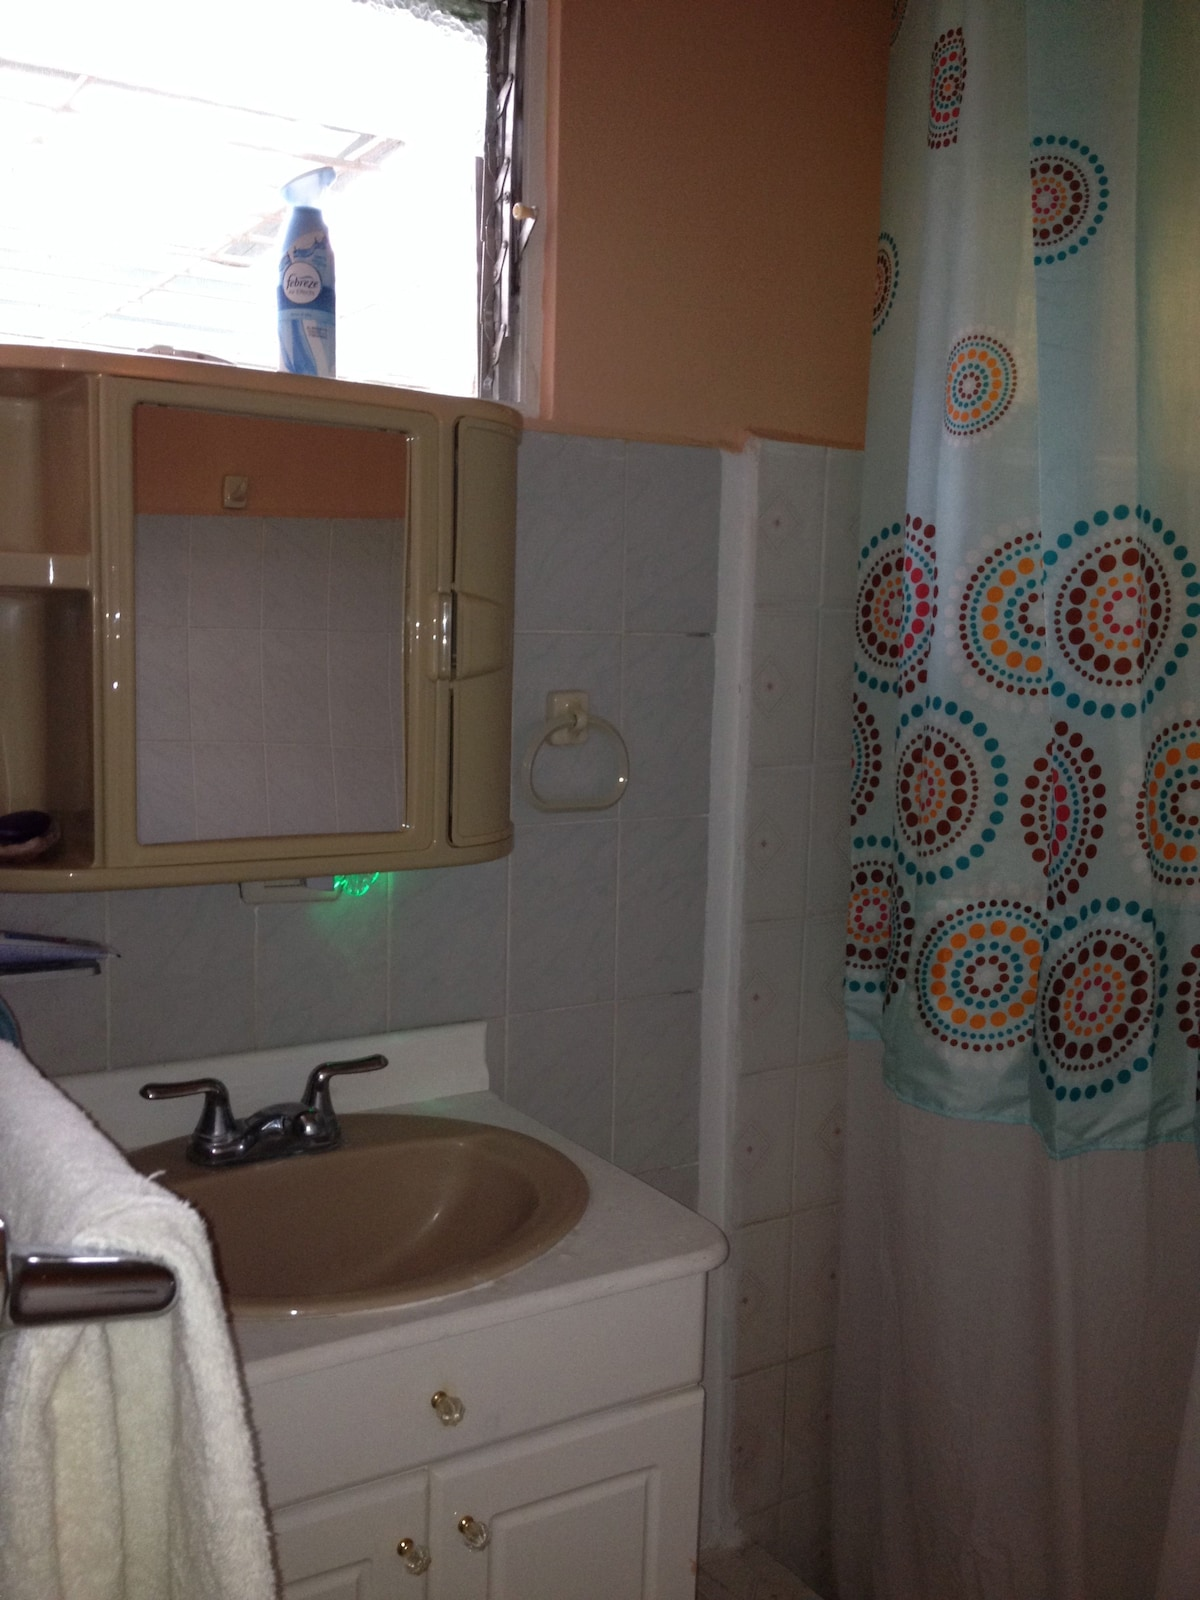 This is a shared bathroom, unless no one is renting the second bedroom, then it's all yours!